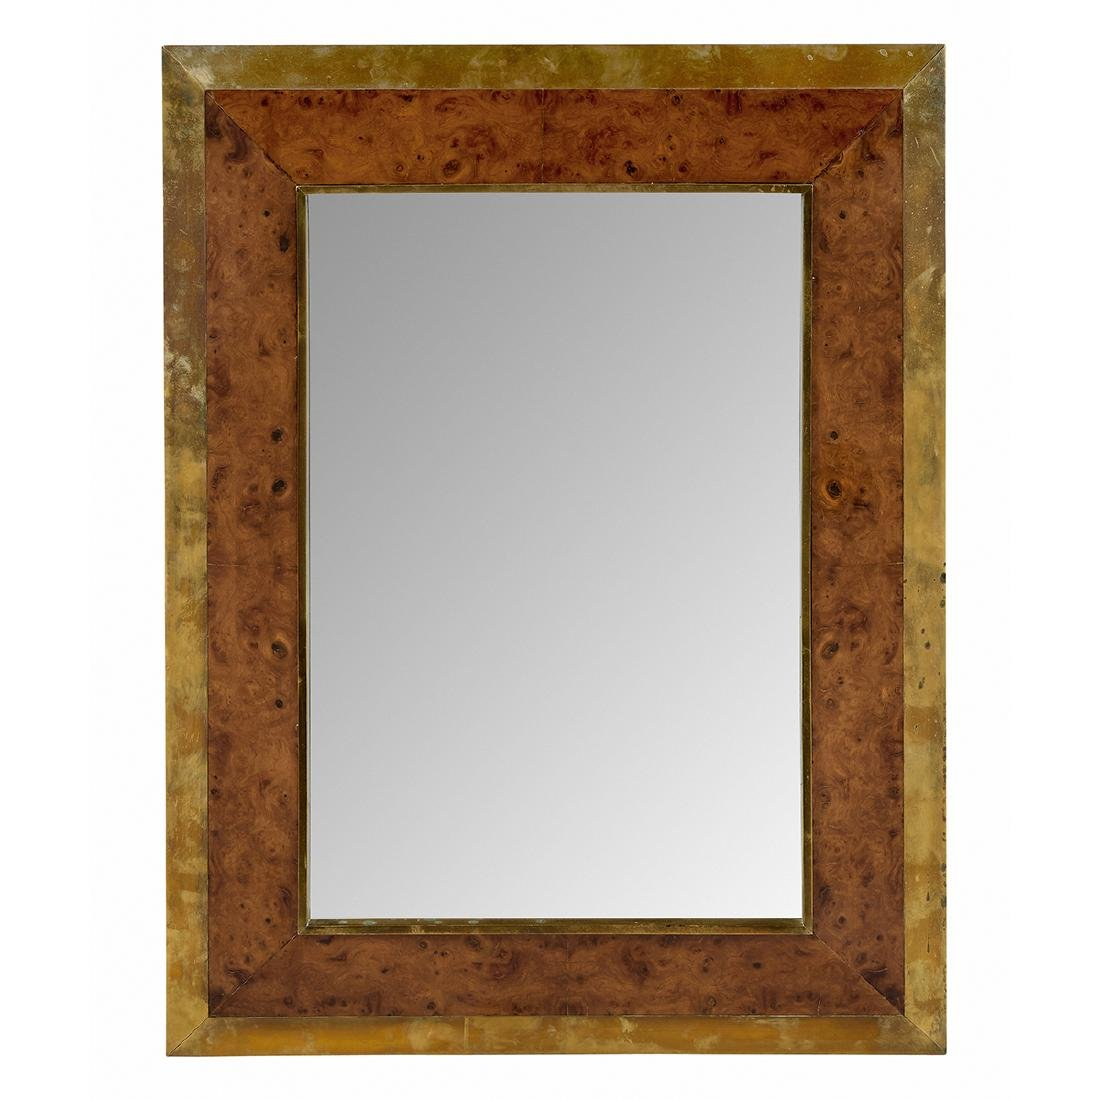 Willy Rizzo attribution wall mirror